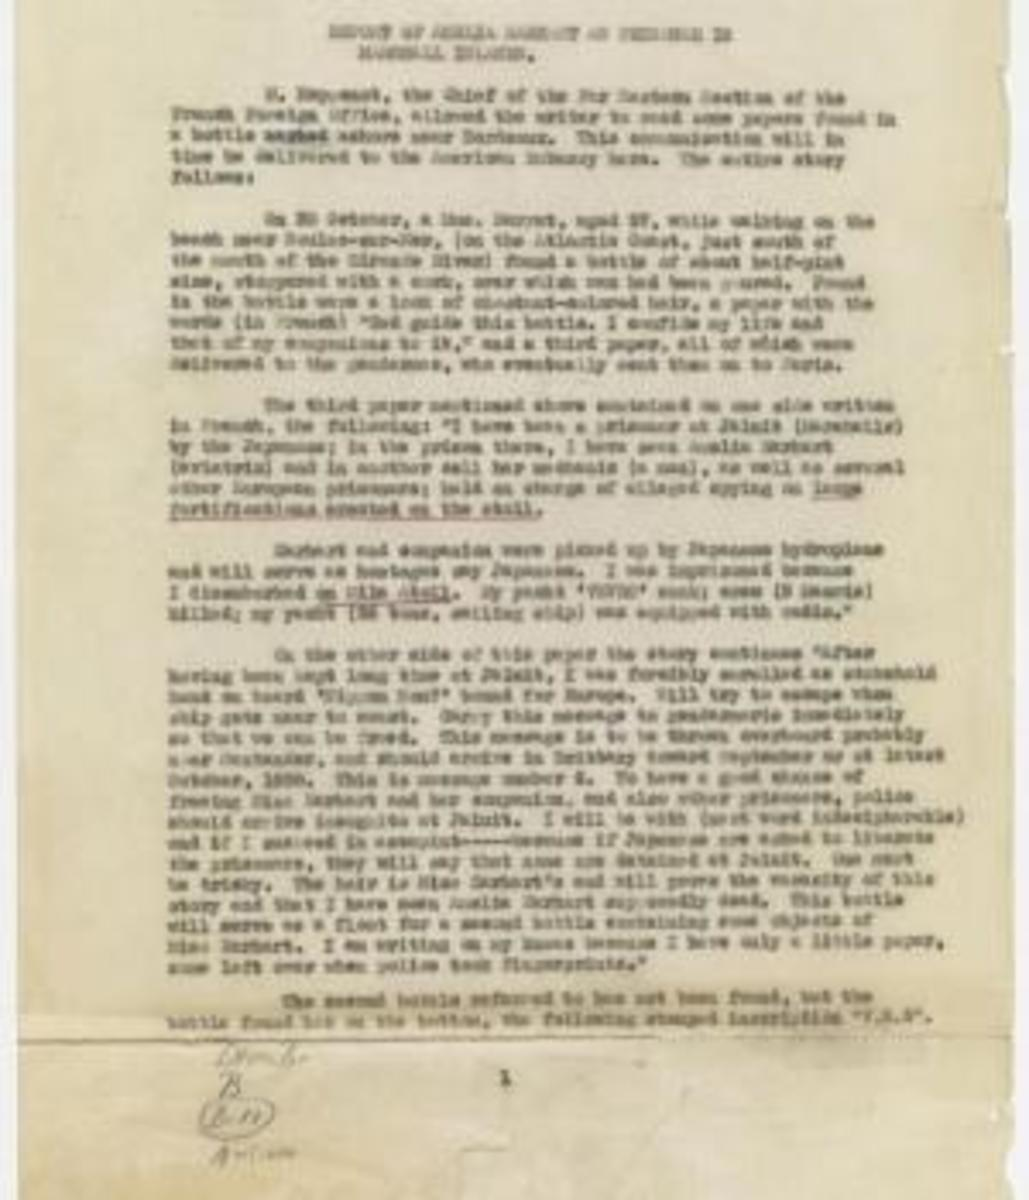 Page 1 of report, dated January 7, 1939, from the records of the Office of the Chief of Naval Operations. This document provides information that Earhart was a prisoner in the Marshall Islands. (Credit: National Archives)